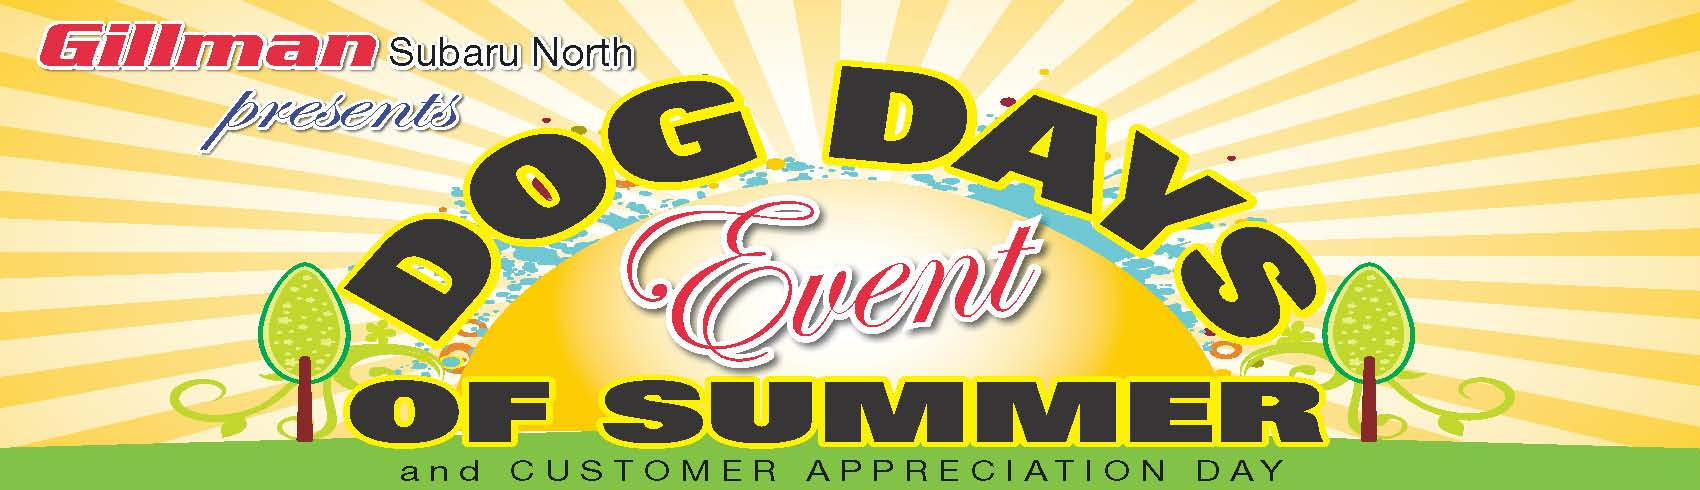 Gillman Subaru North >> Join Gillman Subaru North This Weekend Sat July 13th At The